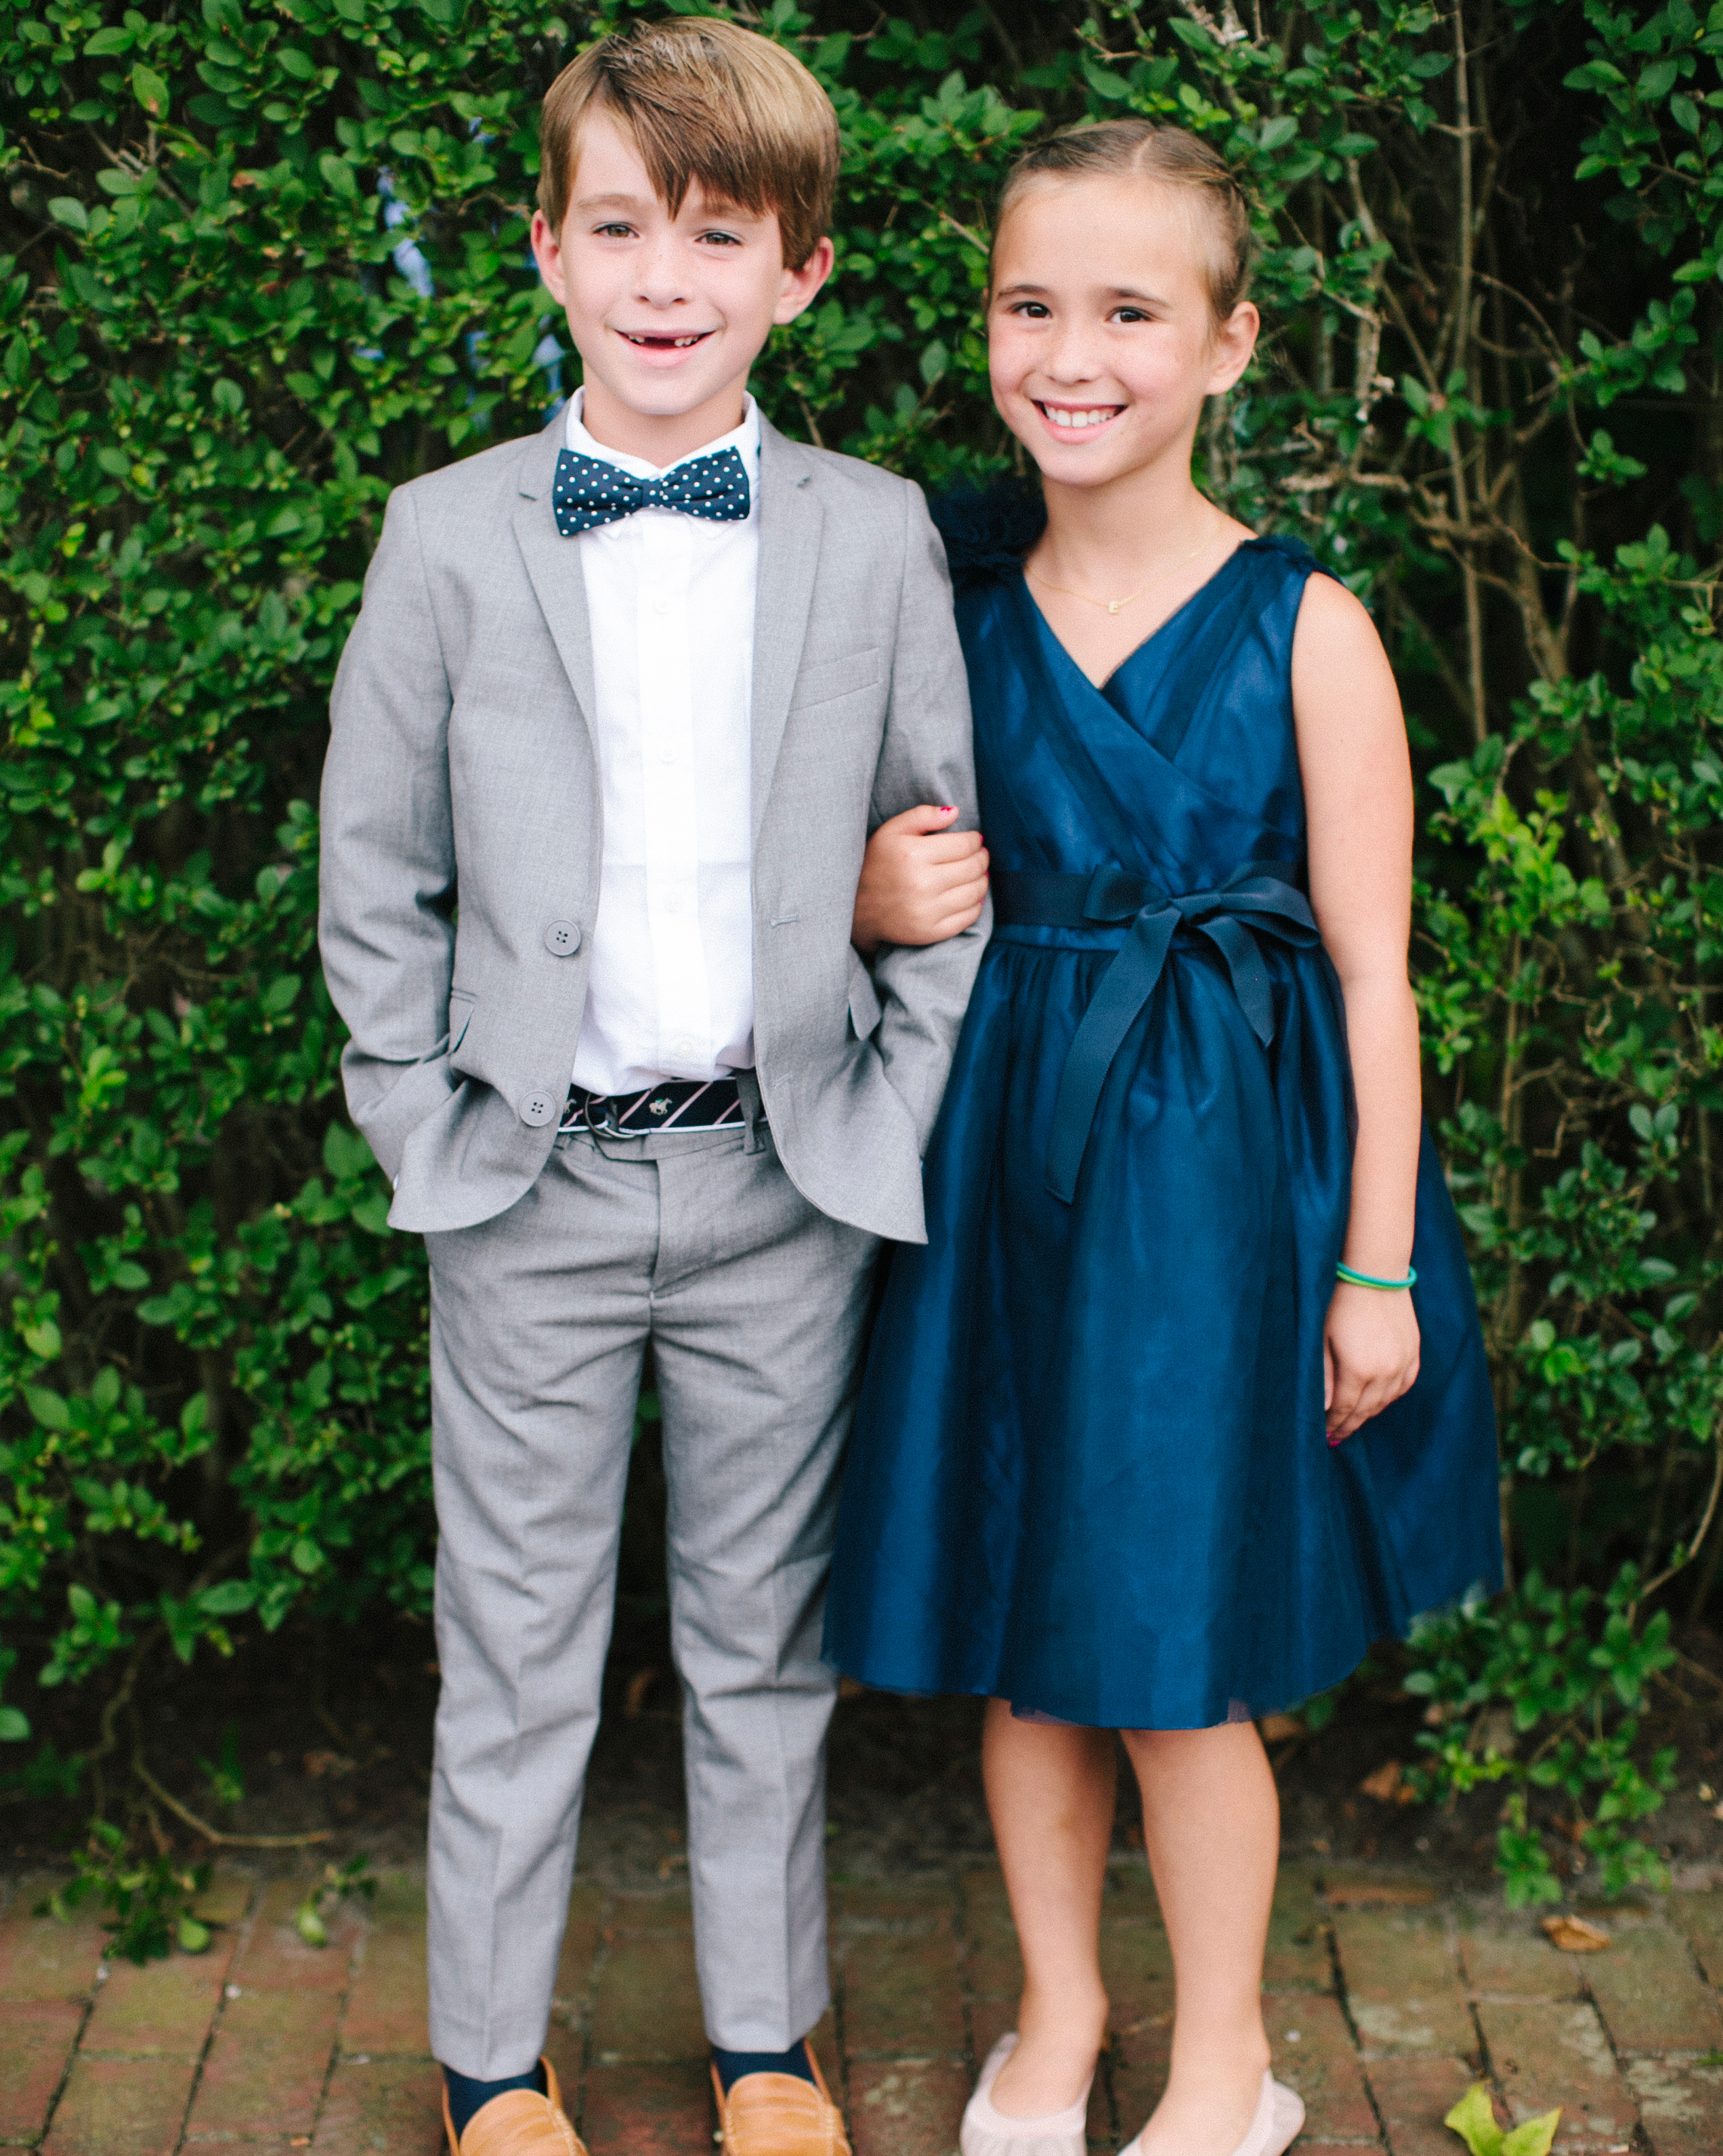 kristen-jonathan-wedding-kids-0213-s112193-1015.jpg